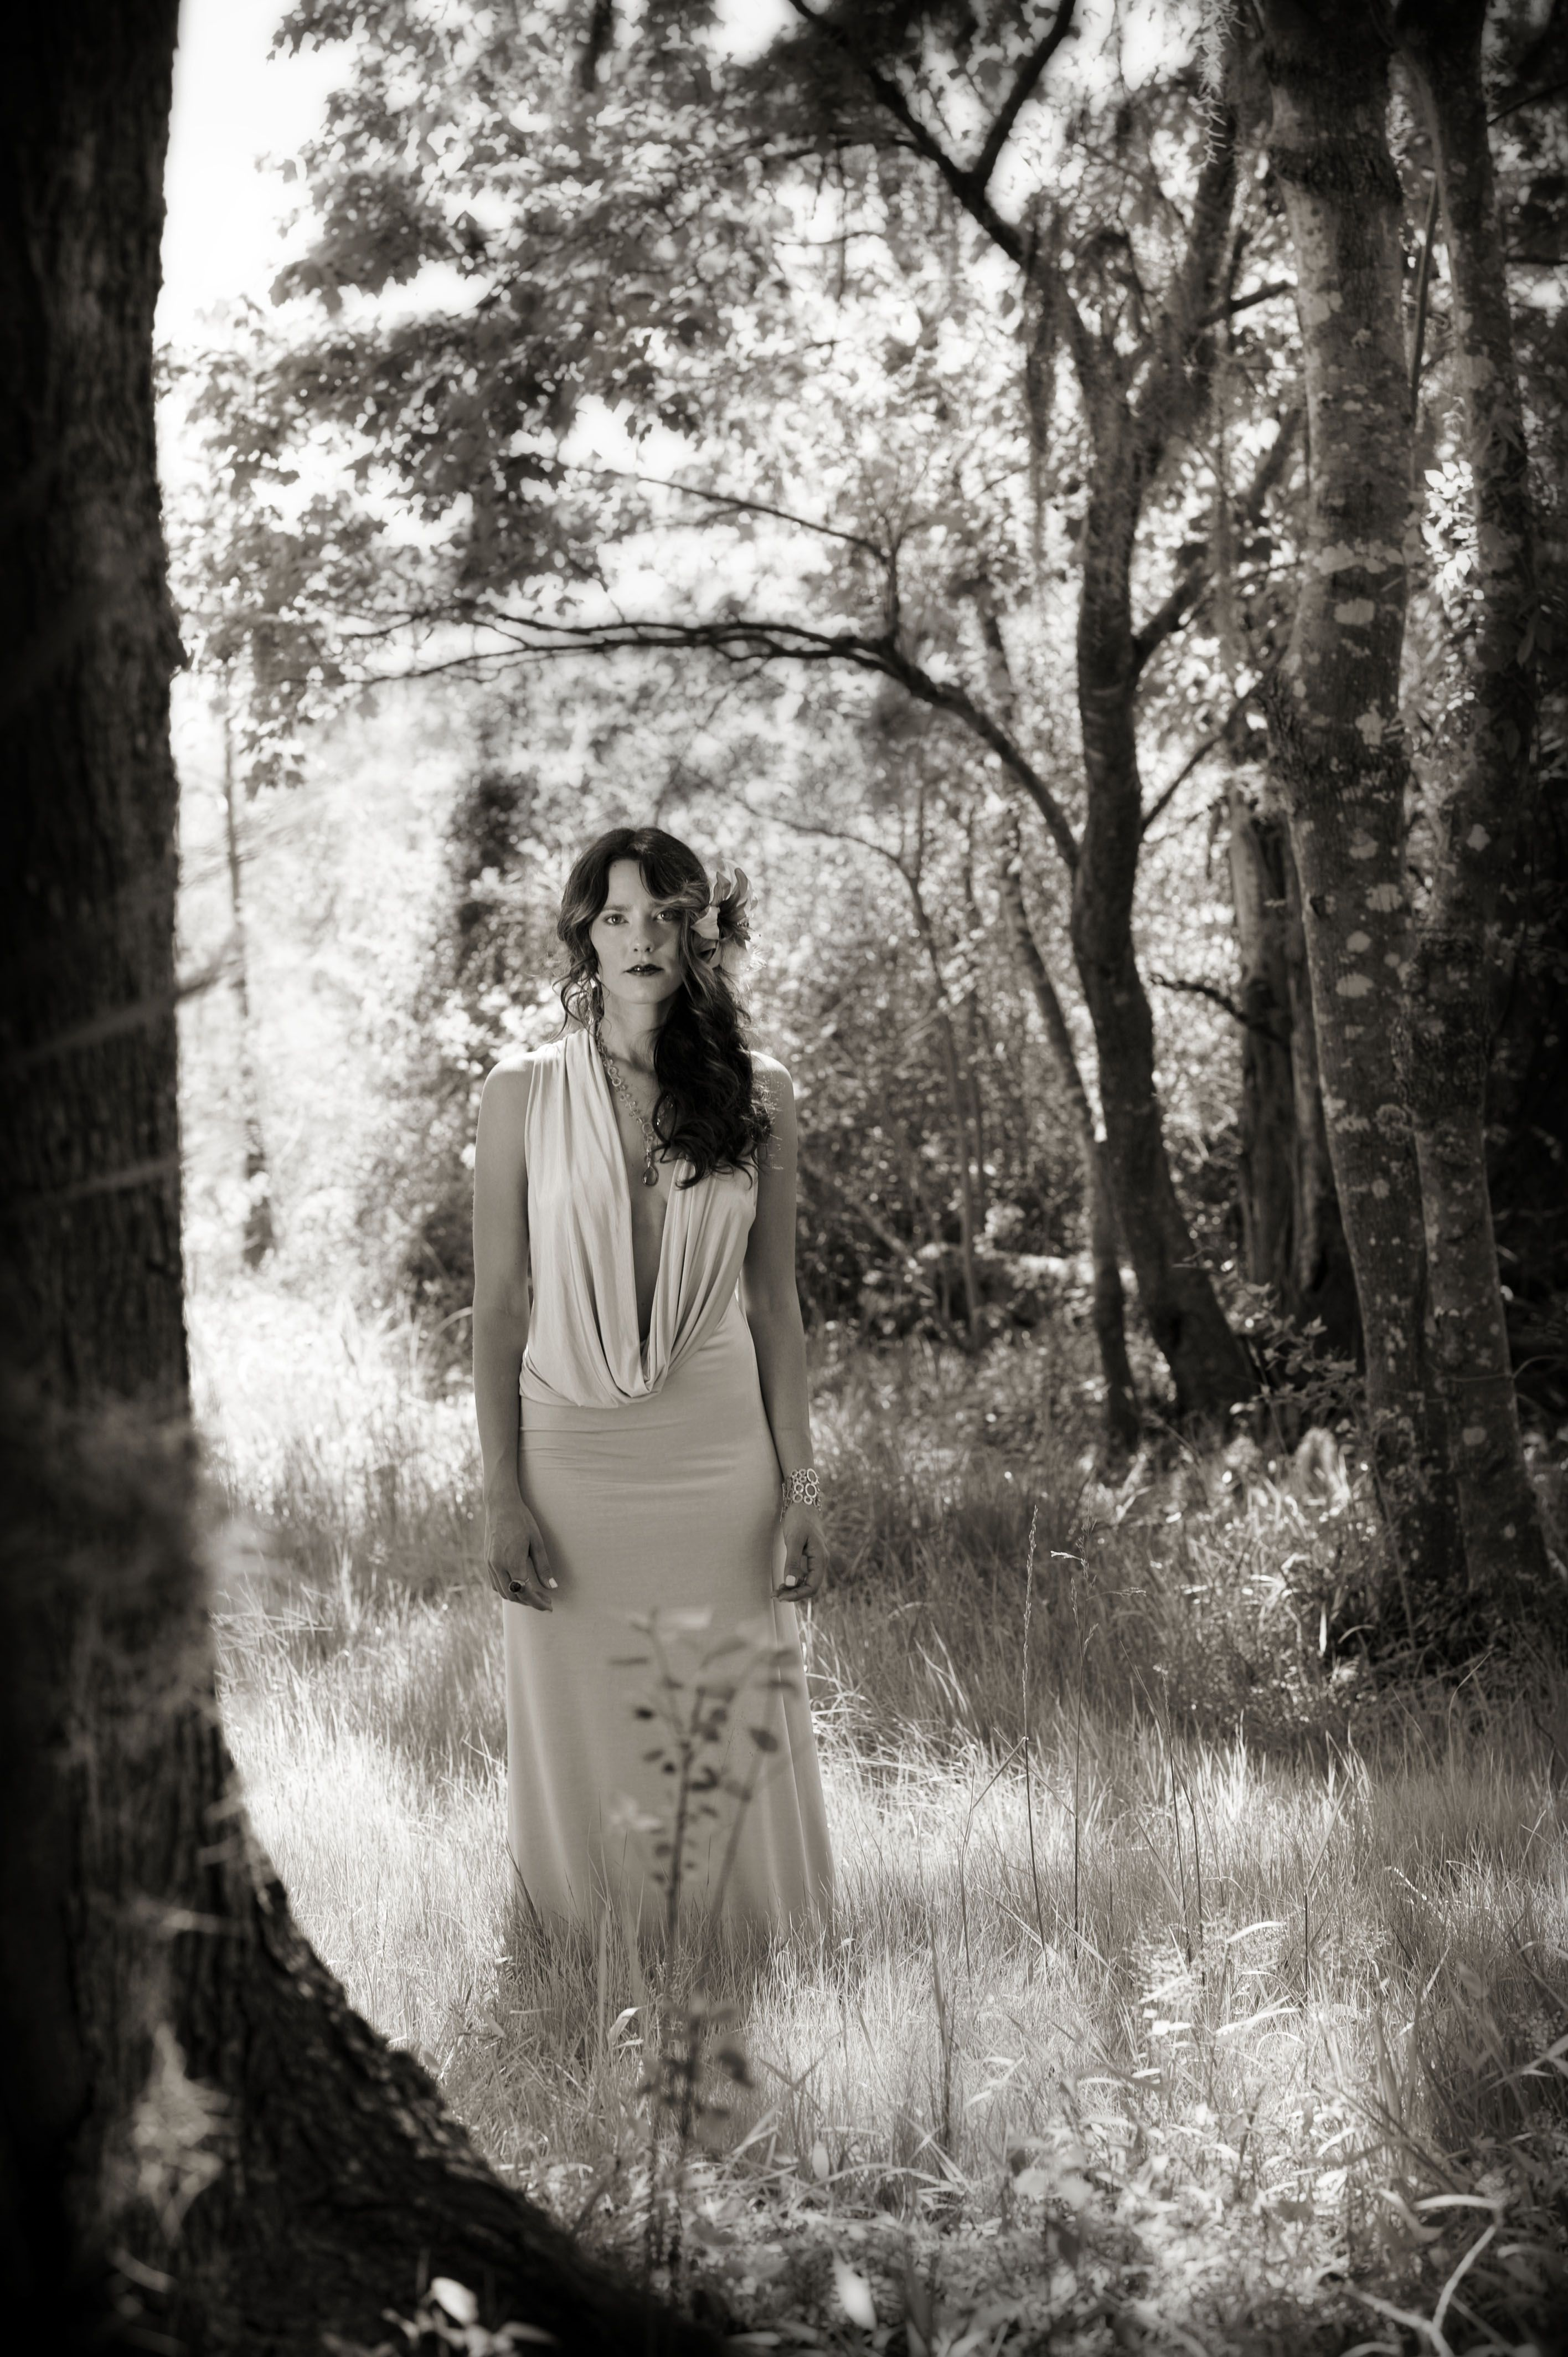 Nature wedding dress  One Love by Rachel Gordon Photographed in nature by Sarah Poe